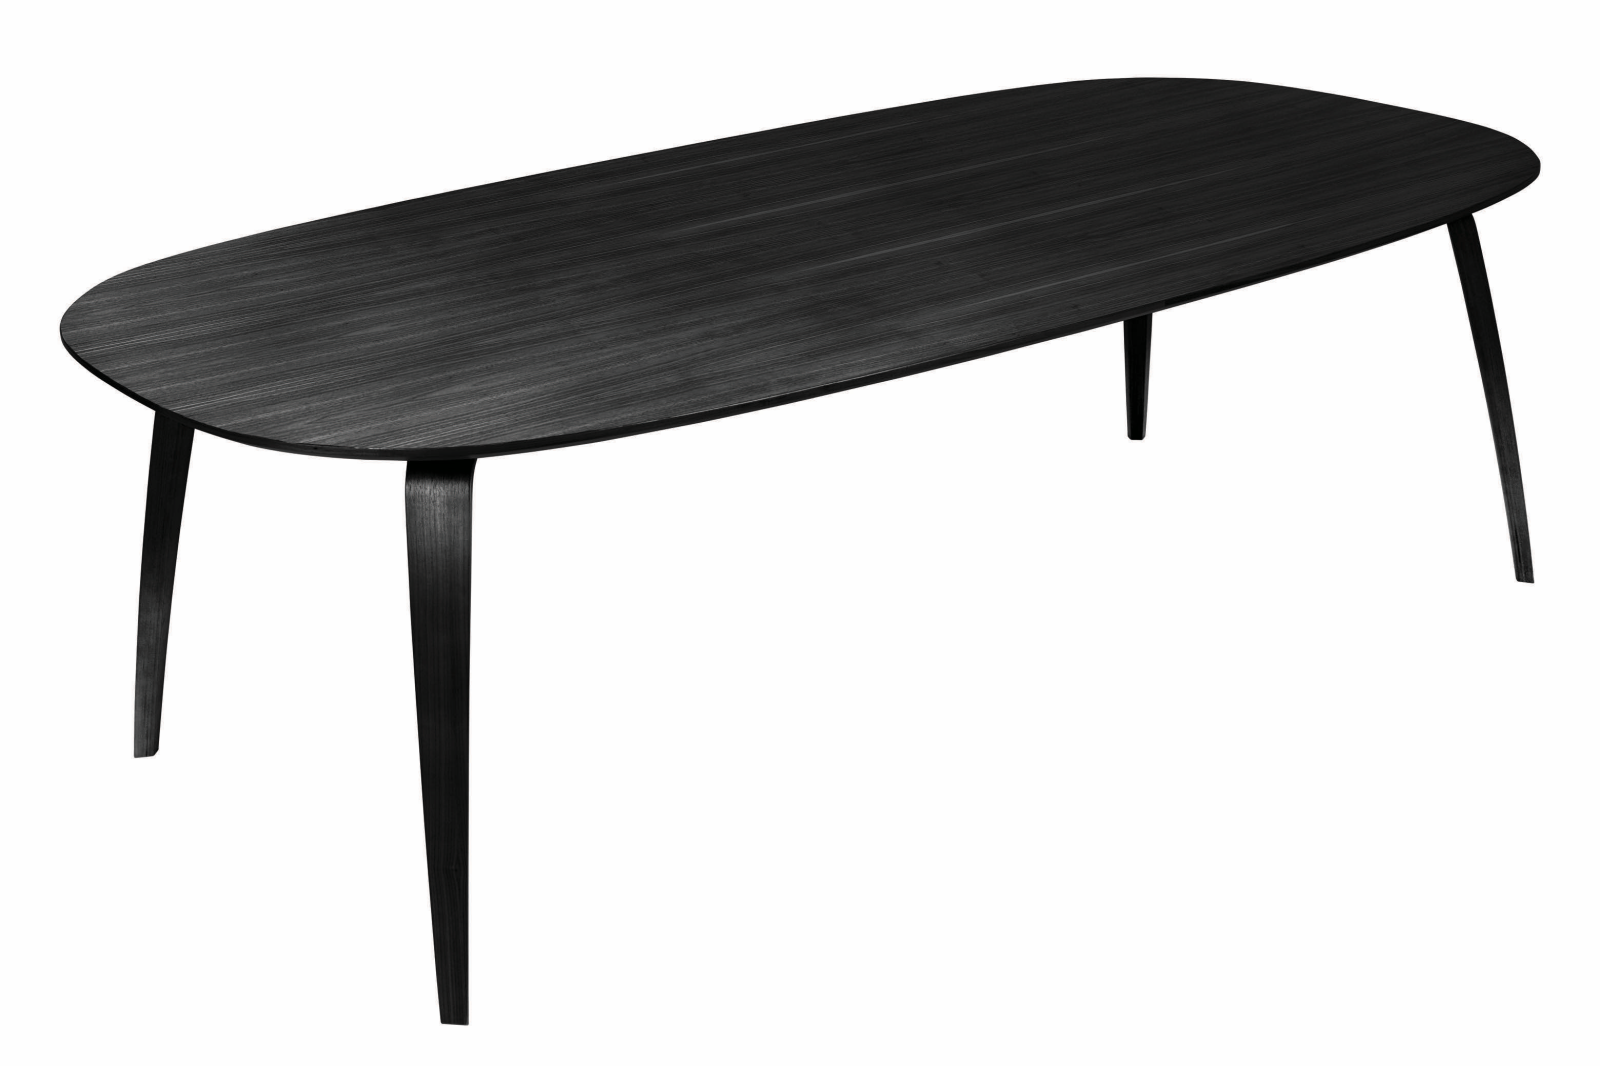 Gubi Elliptical Dining Table Gubi Wood Black Stained Ash